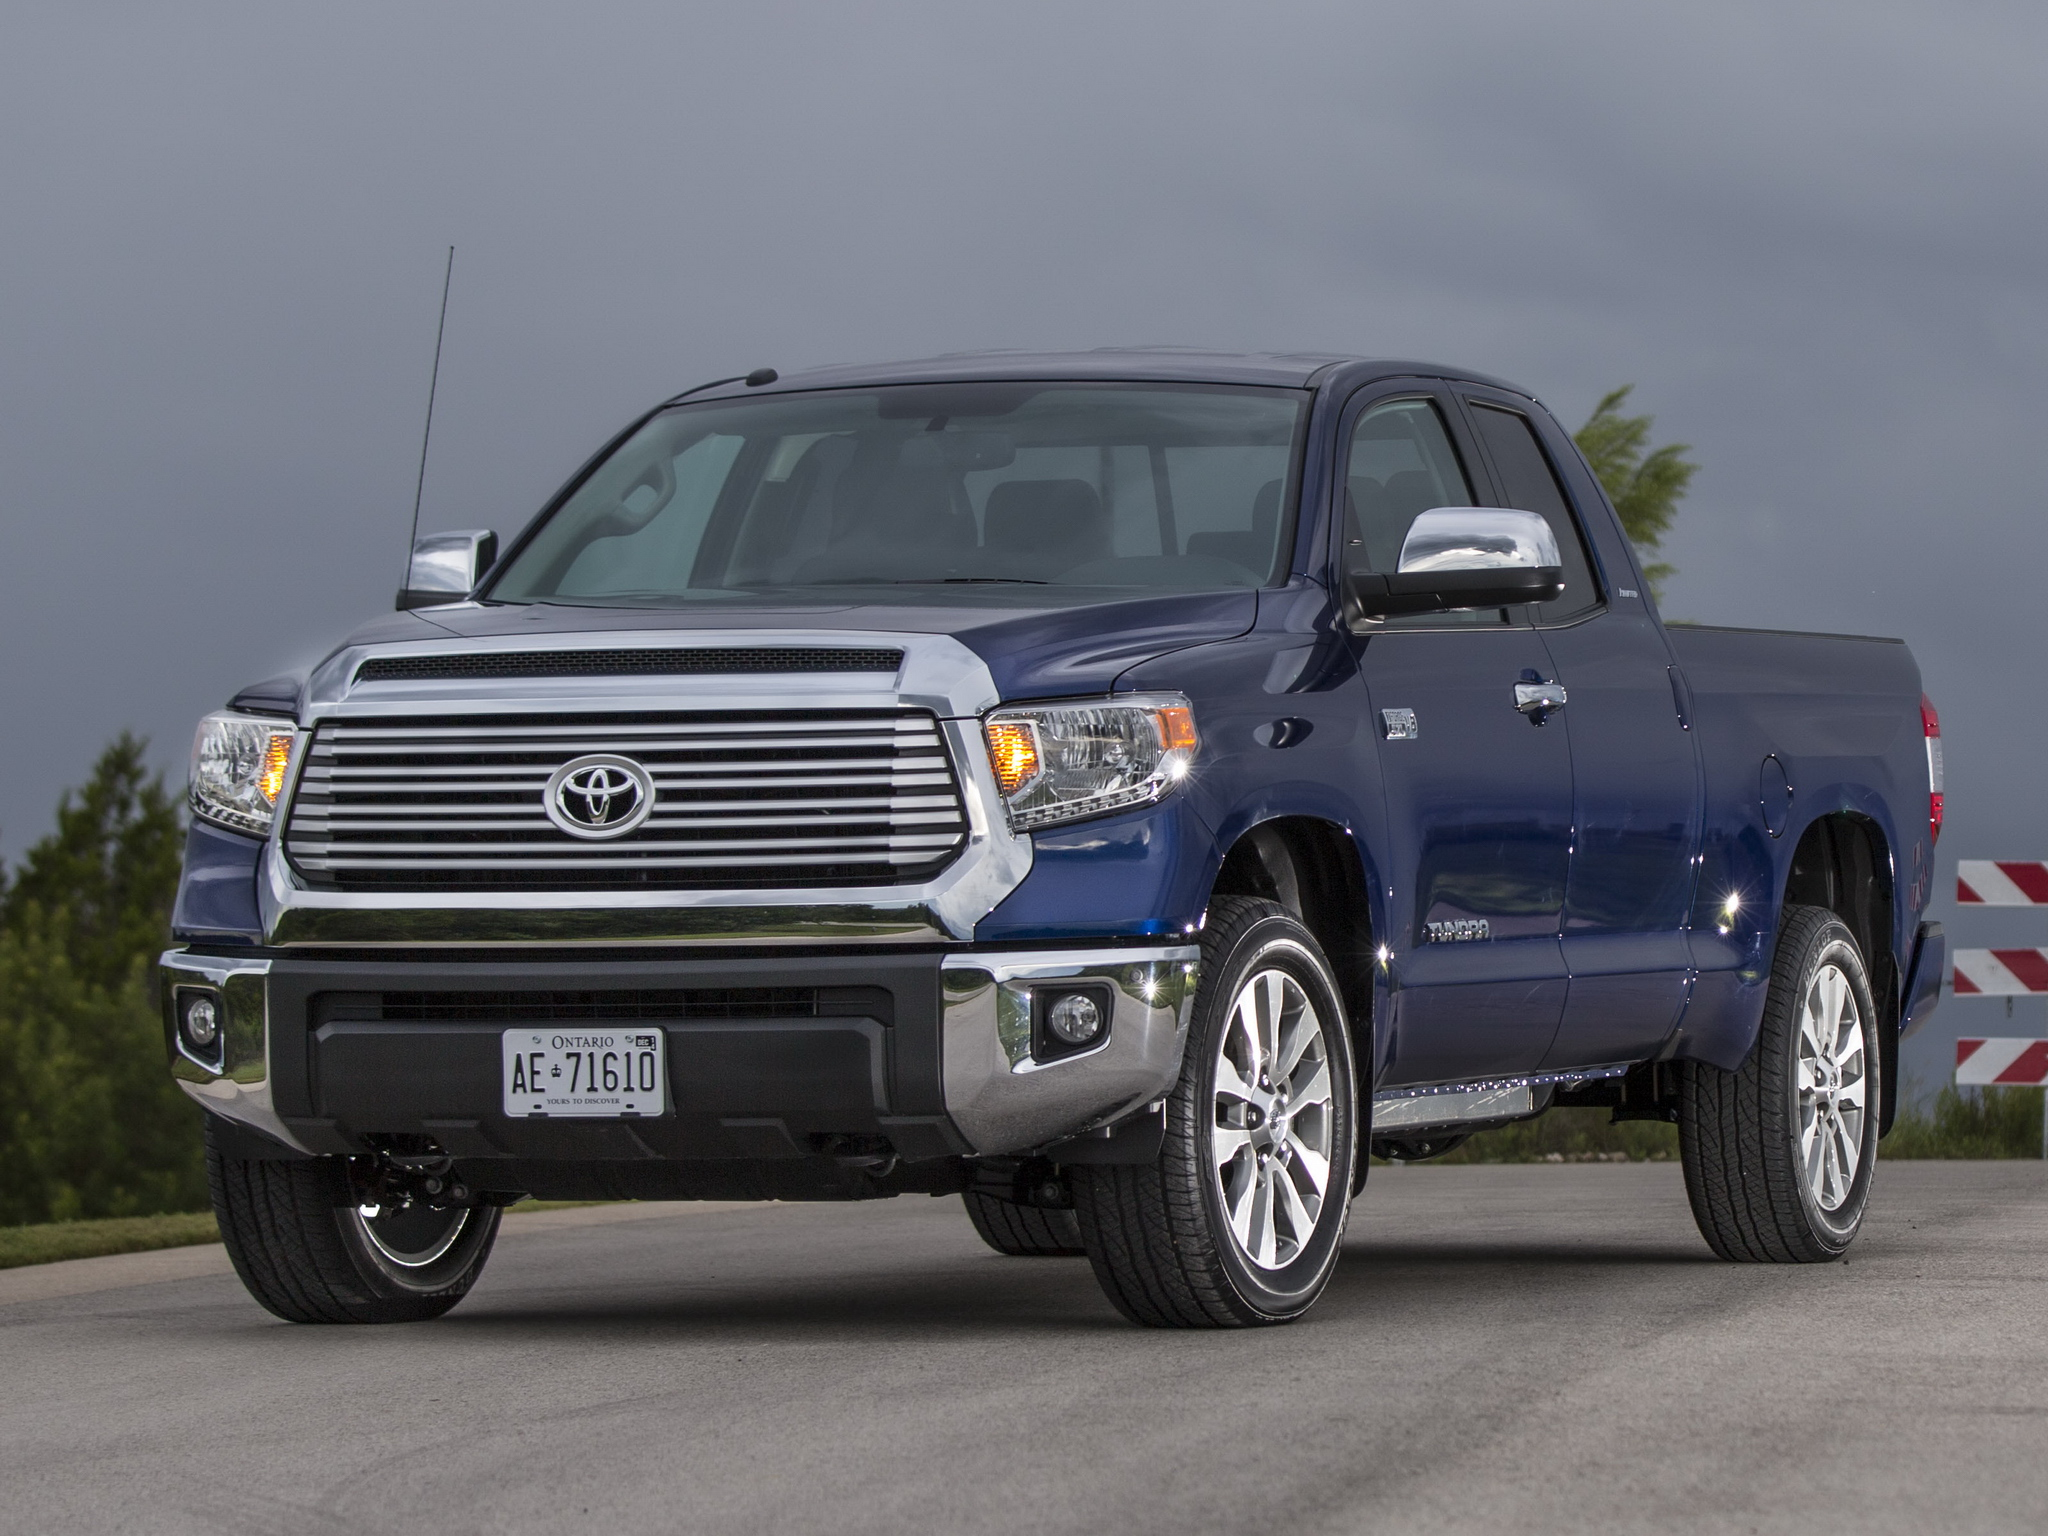 2014 toyota tundra double cab limited pickup h wallpaper 2048x1536 159344 wallpaperup. Black Bedroom Furniture Sets. Home Design Ideas